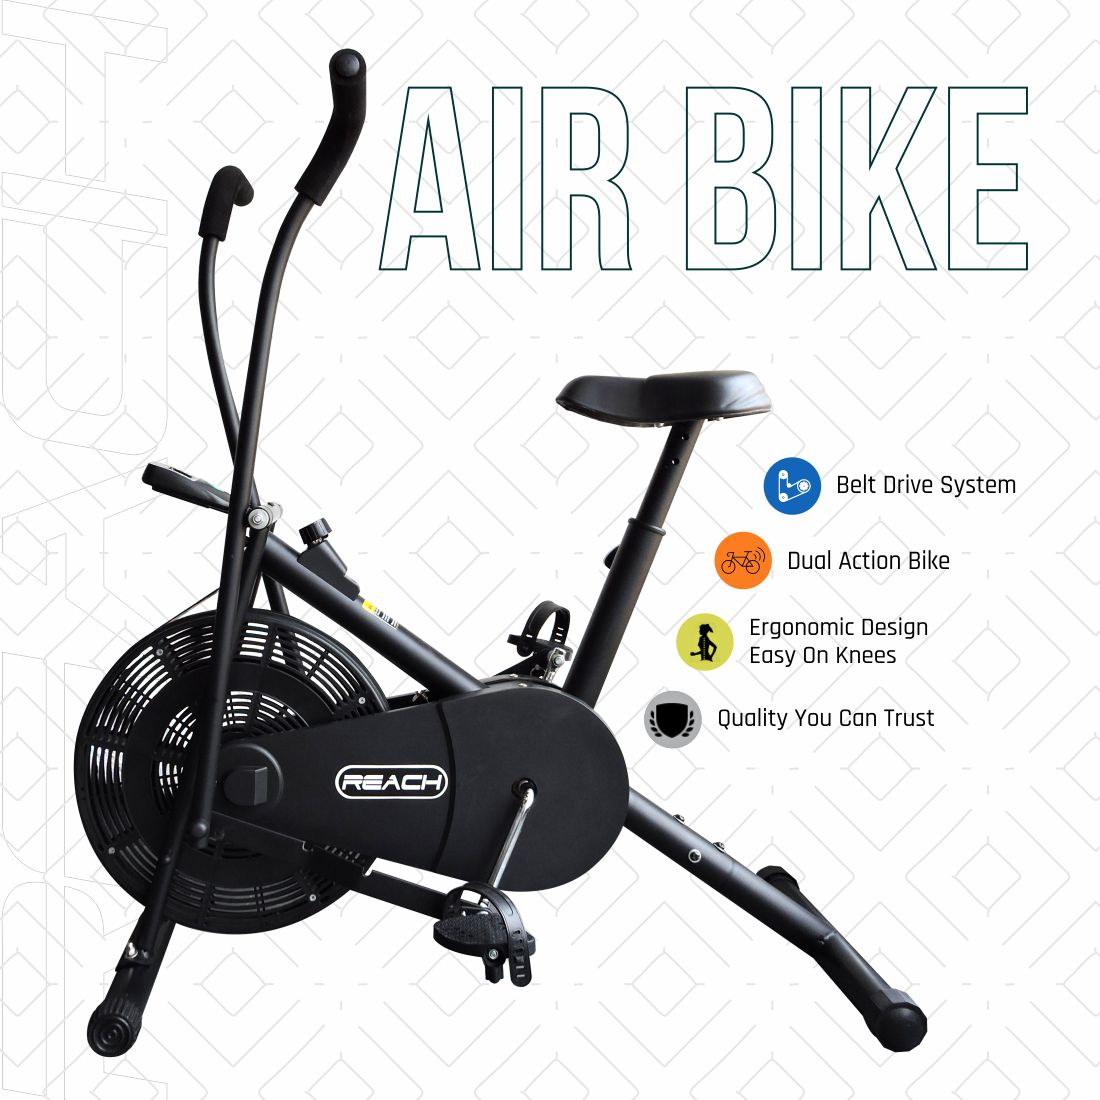 A black Reach Air Bike (moving handles) on a white background